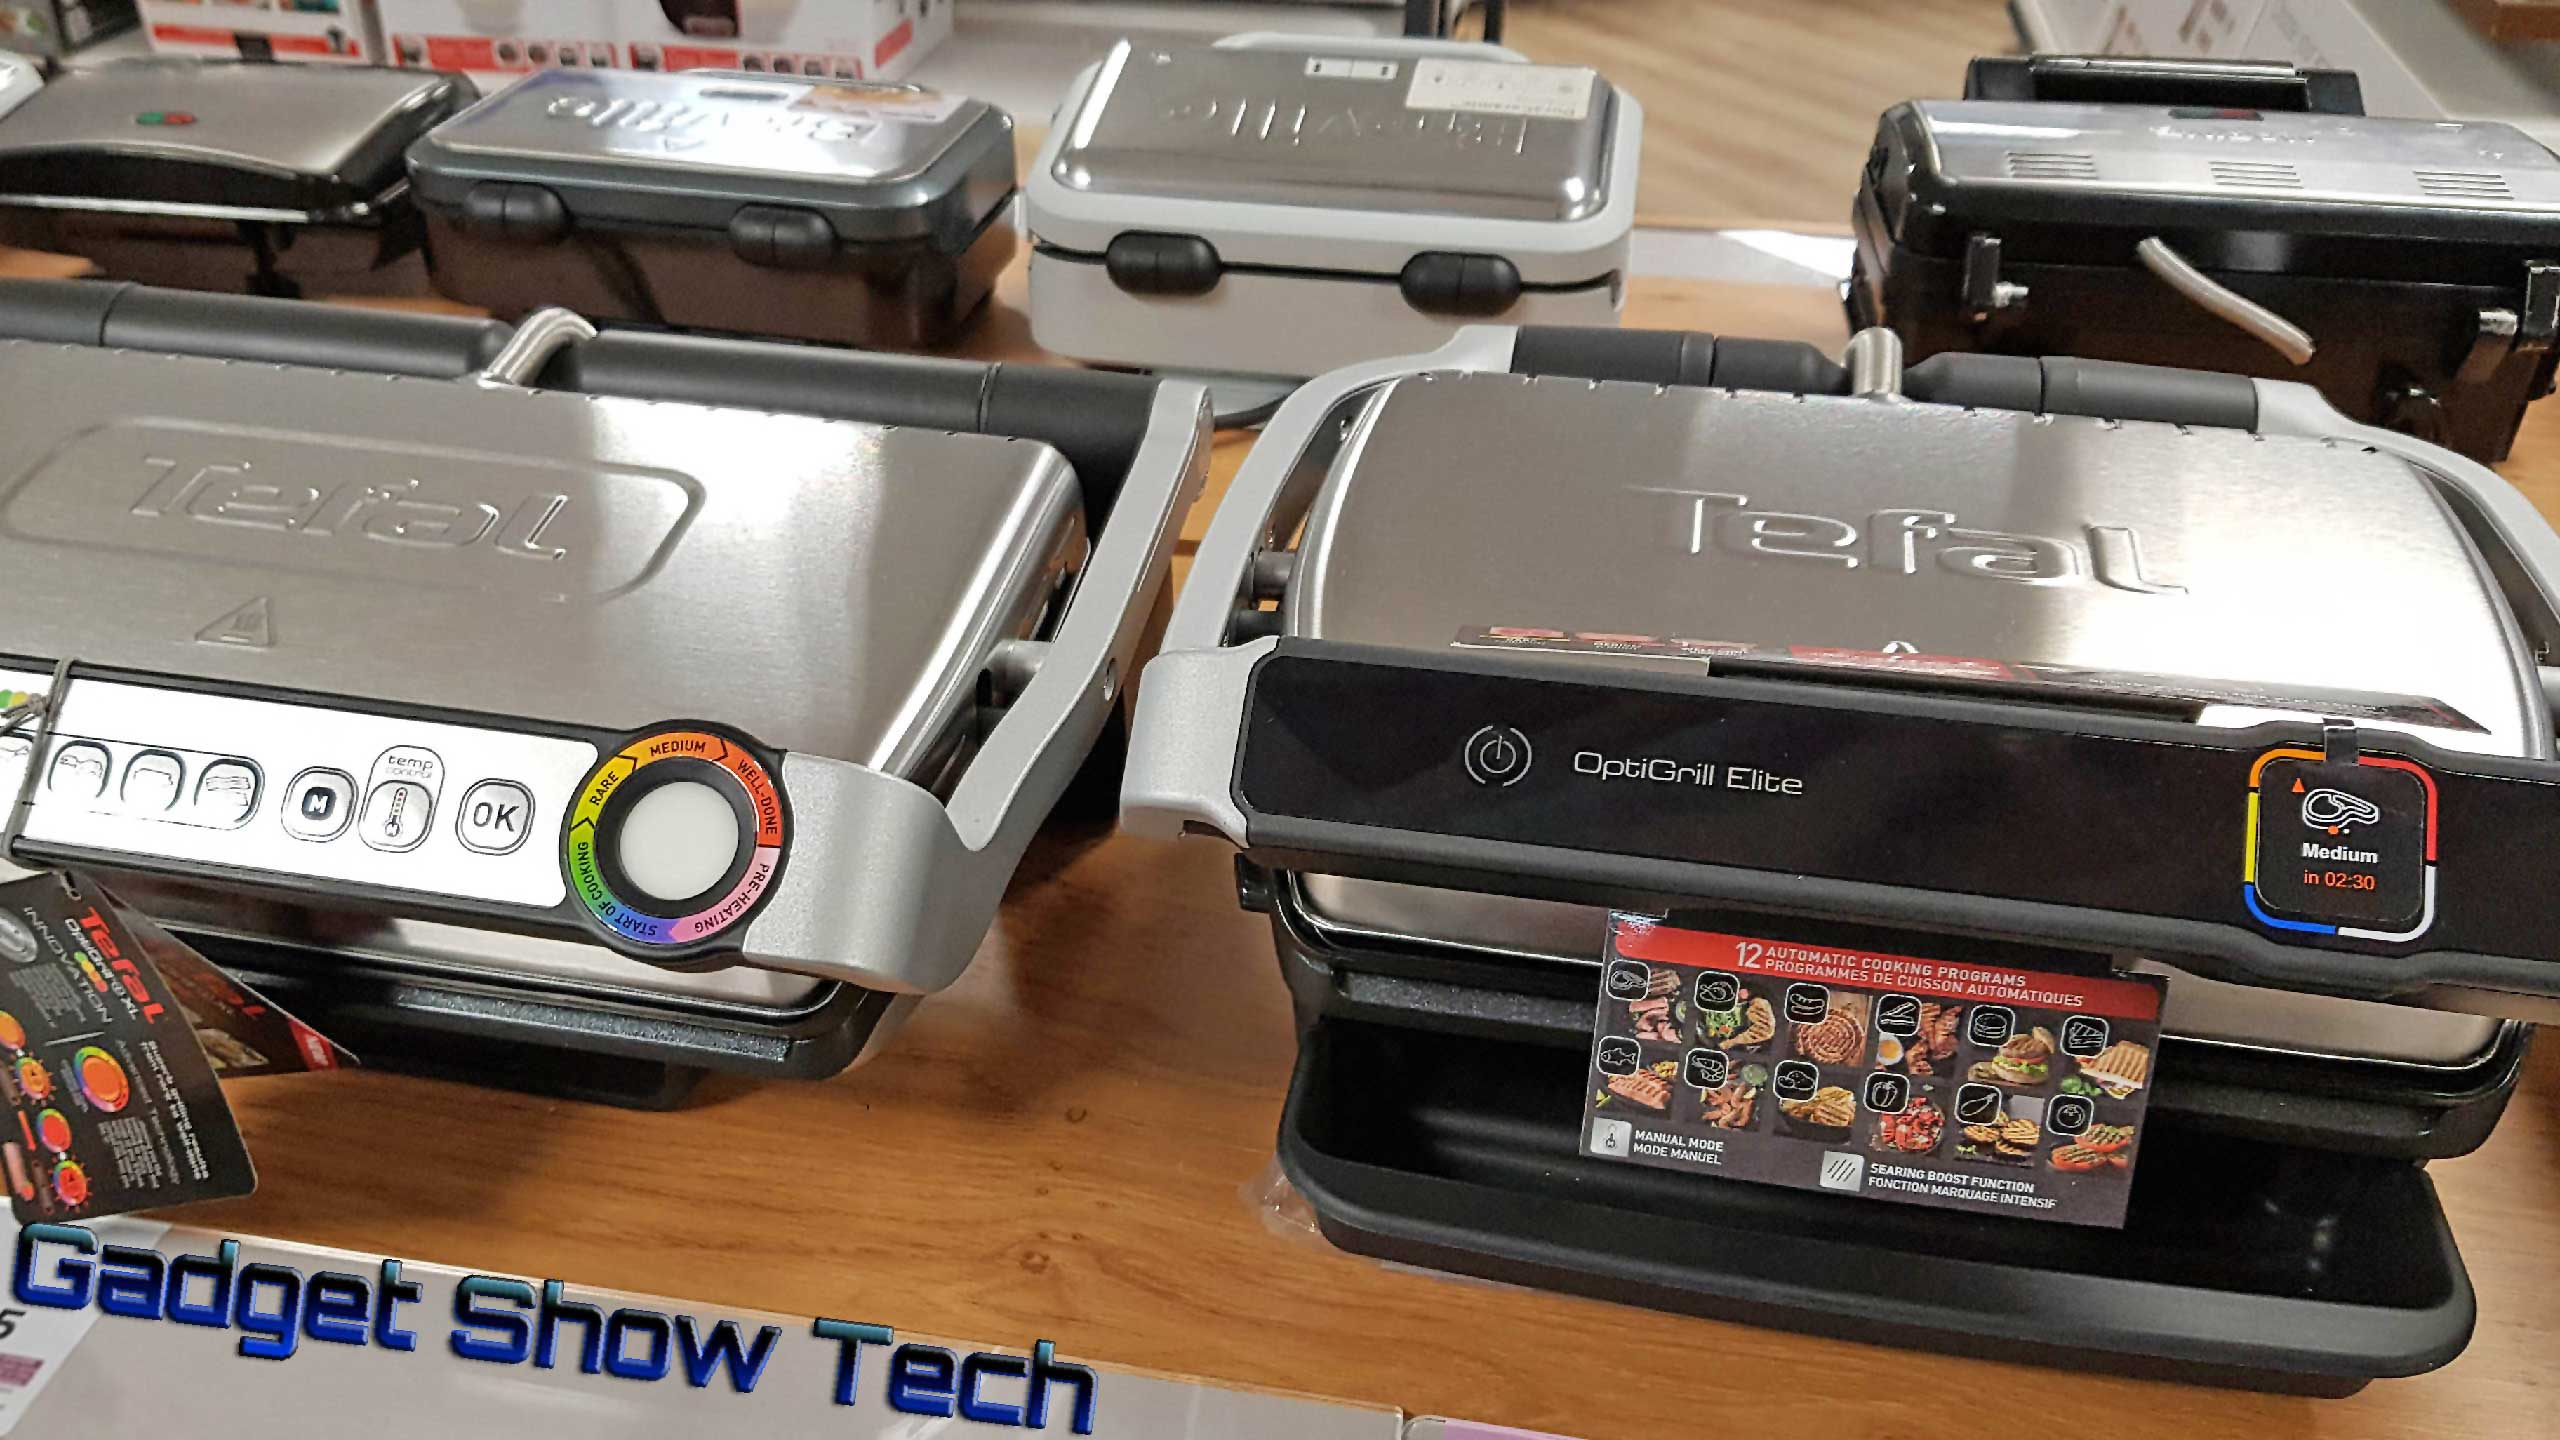 Using the Tefal OptiGrill is like having a professional grill chef at home.